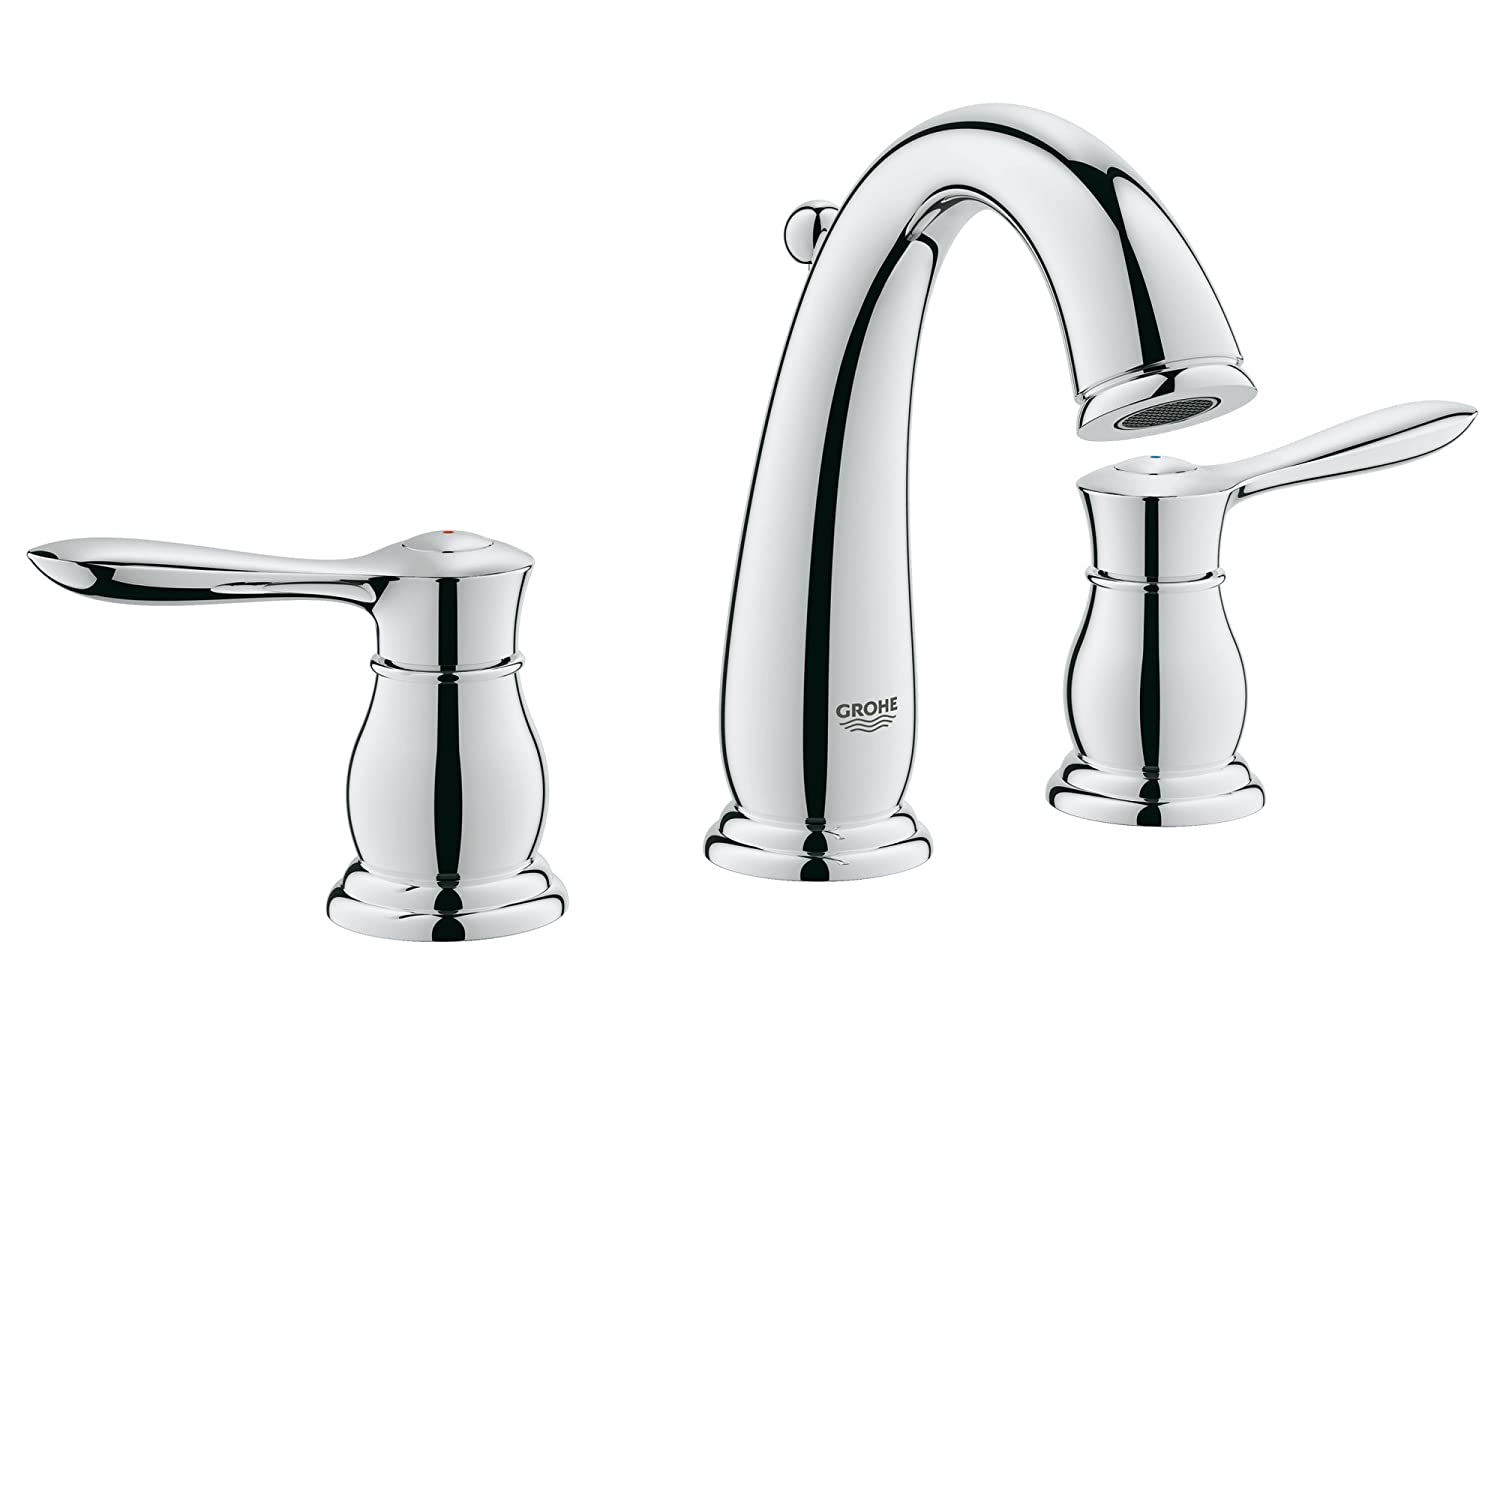 Widespread 2 Handle Bathroom Faucet   1.5 GPM: Home Improvement